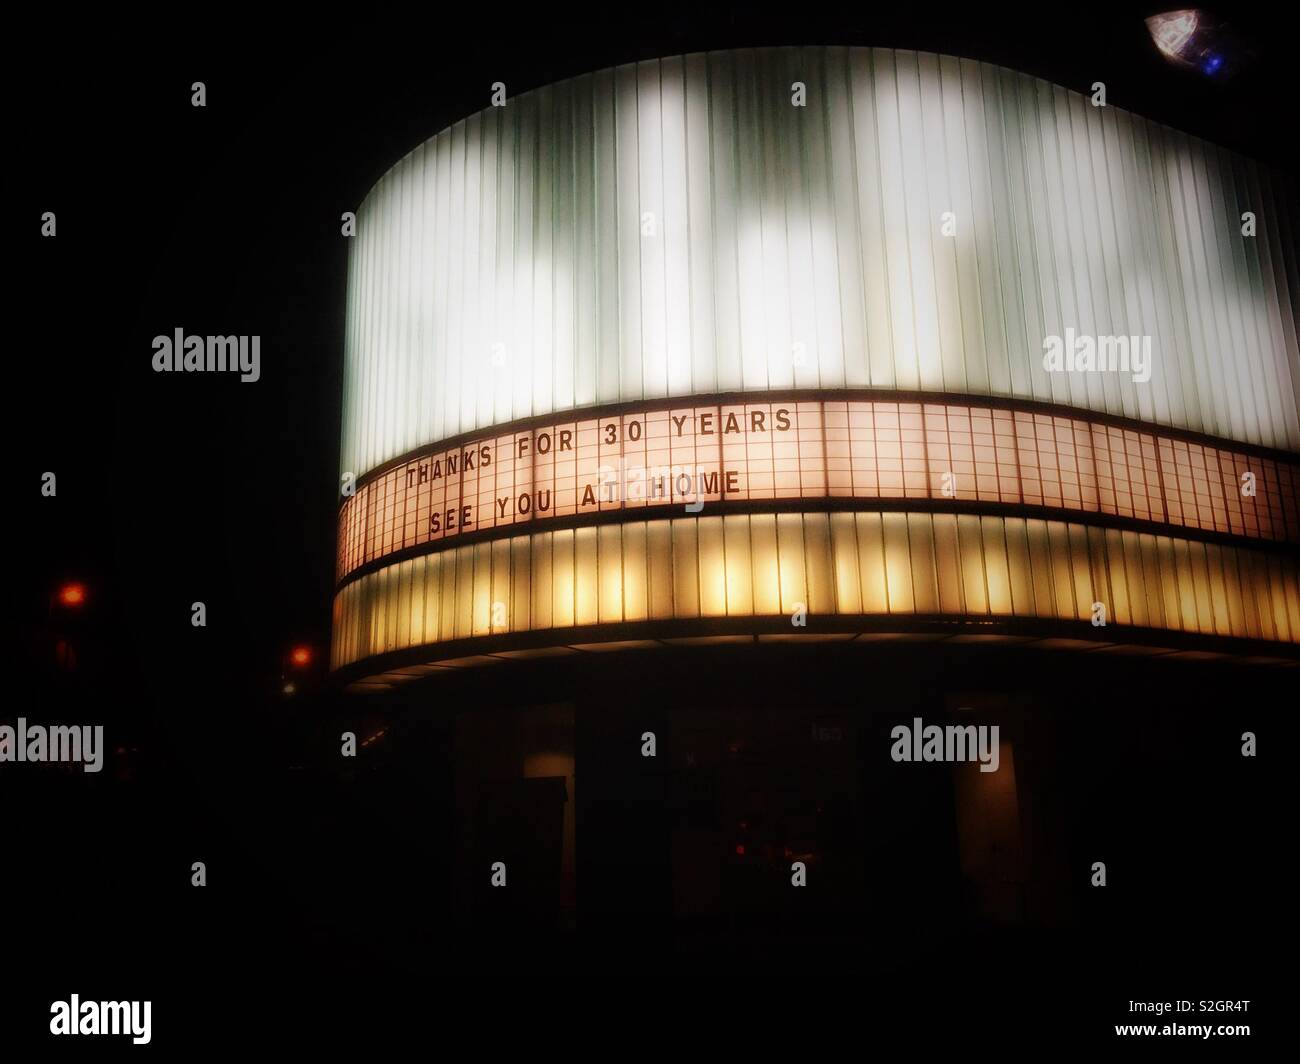 The goodbye message on the Cornerhouse cinema in Manchester - Stock Image